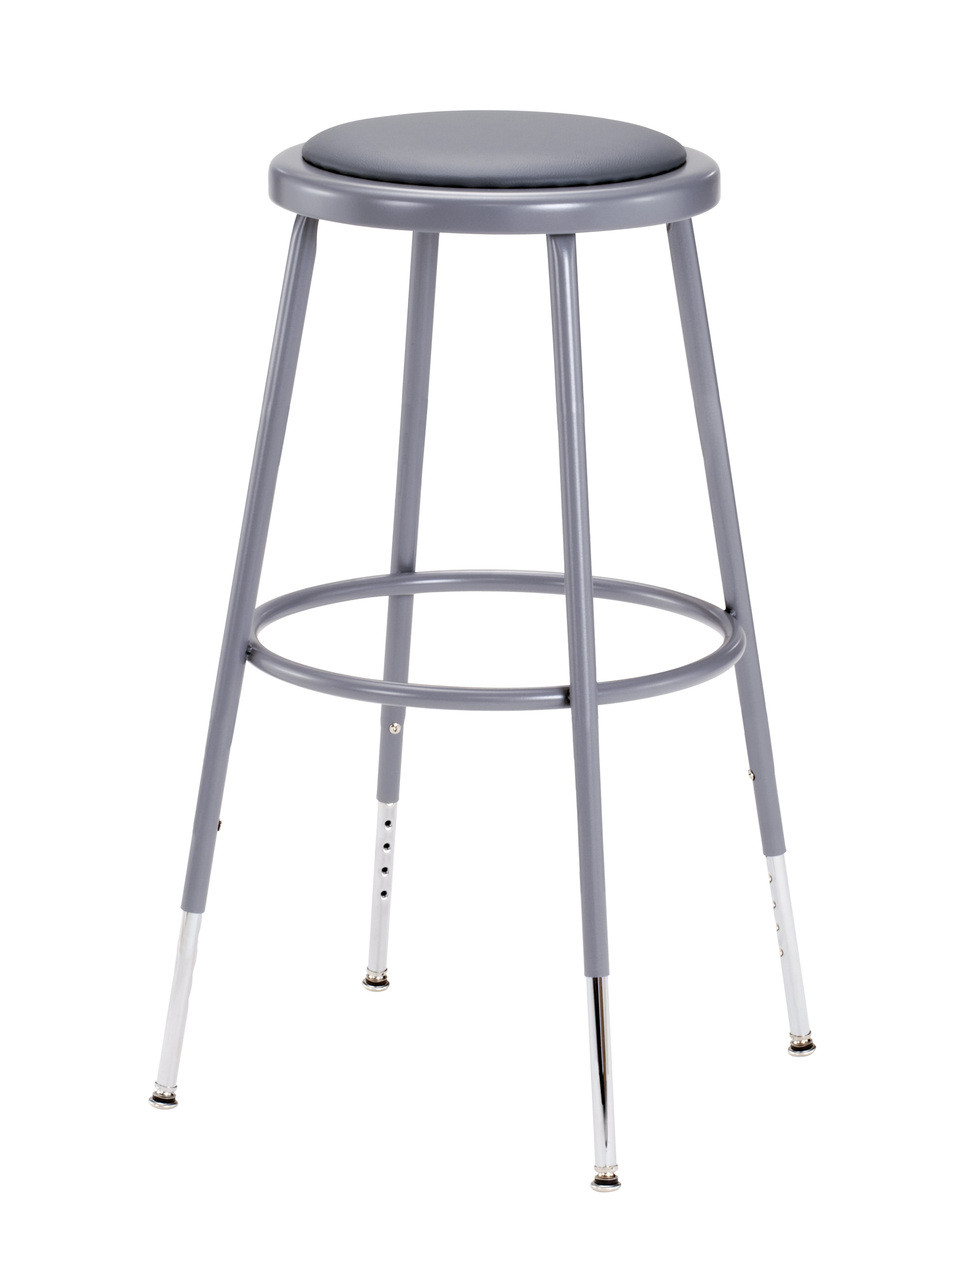 Gray Adjustable Round Science Lab Stool With Padded Seat